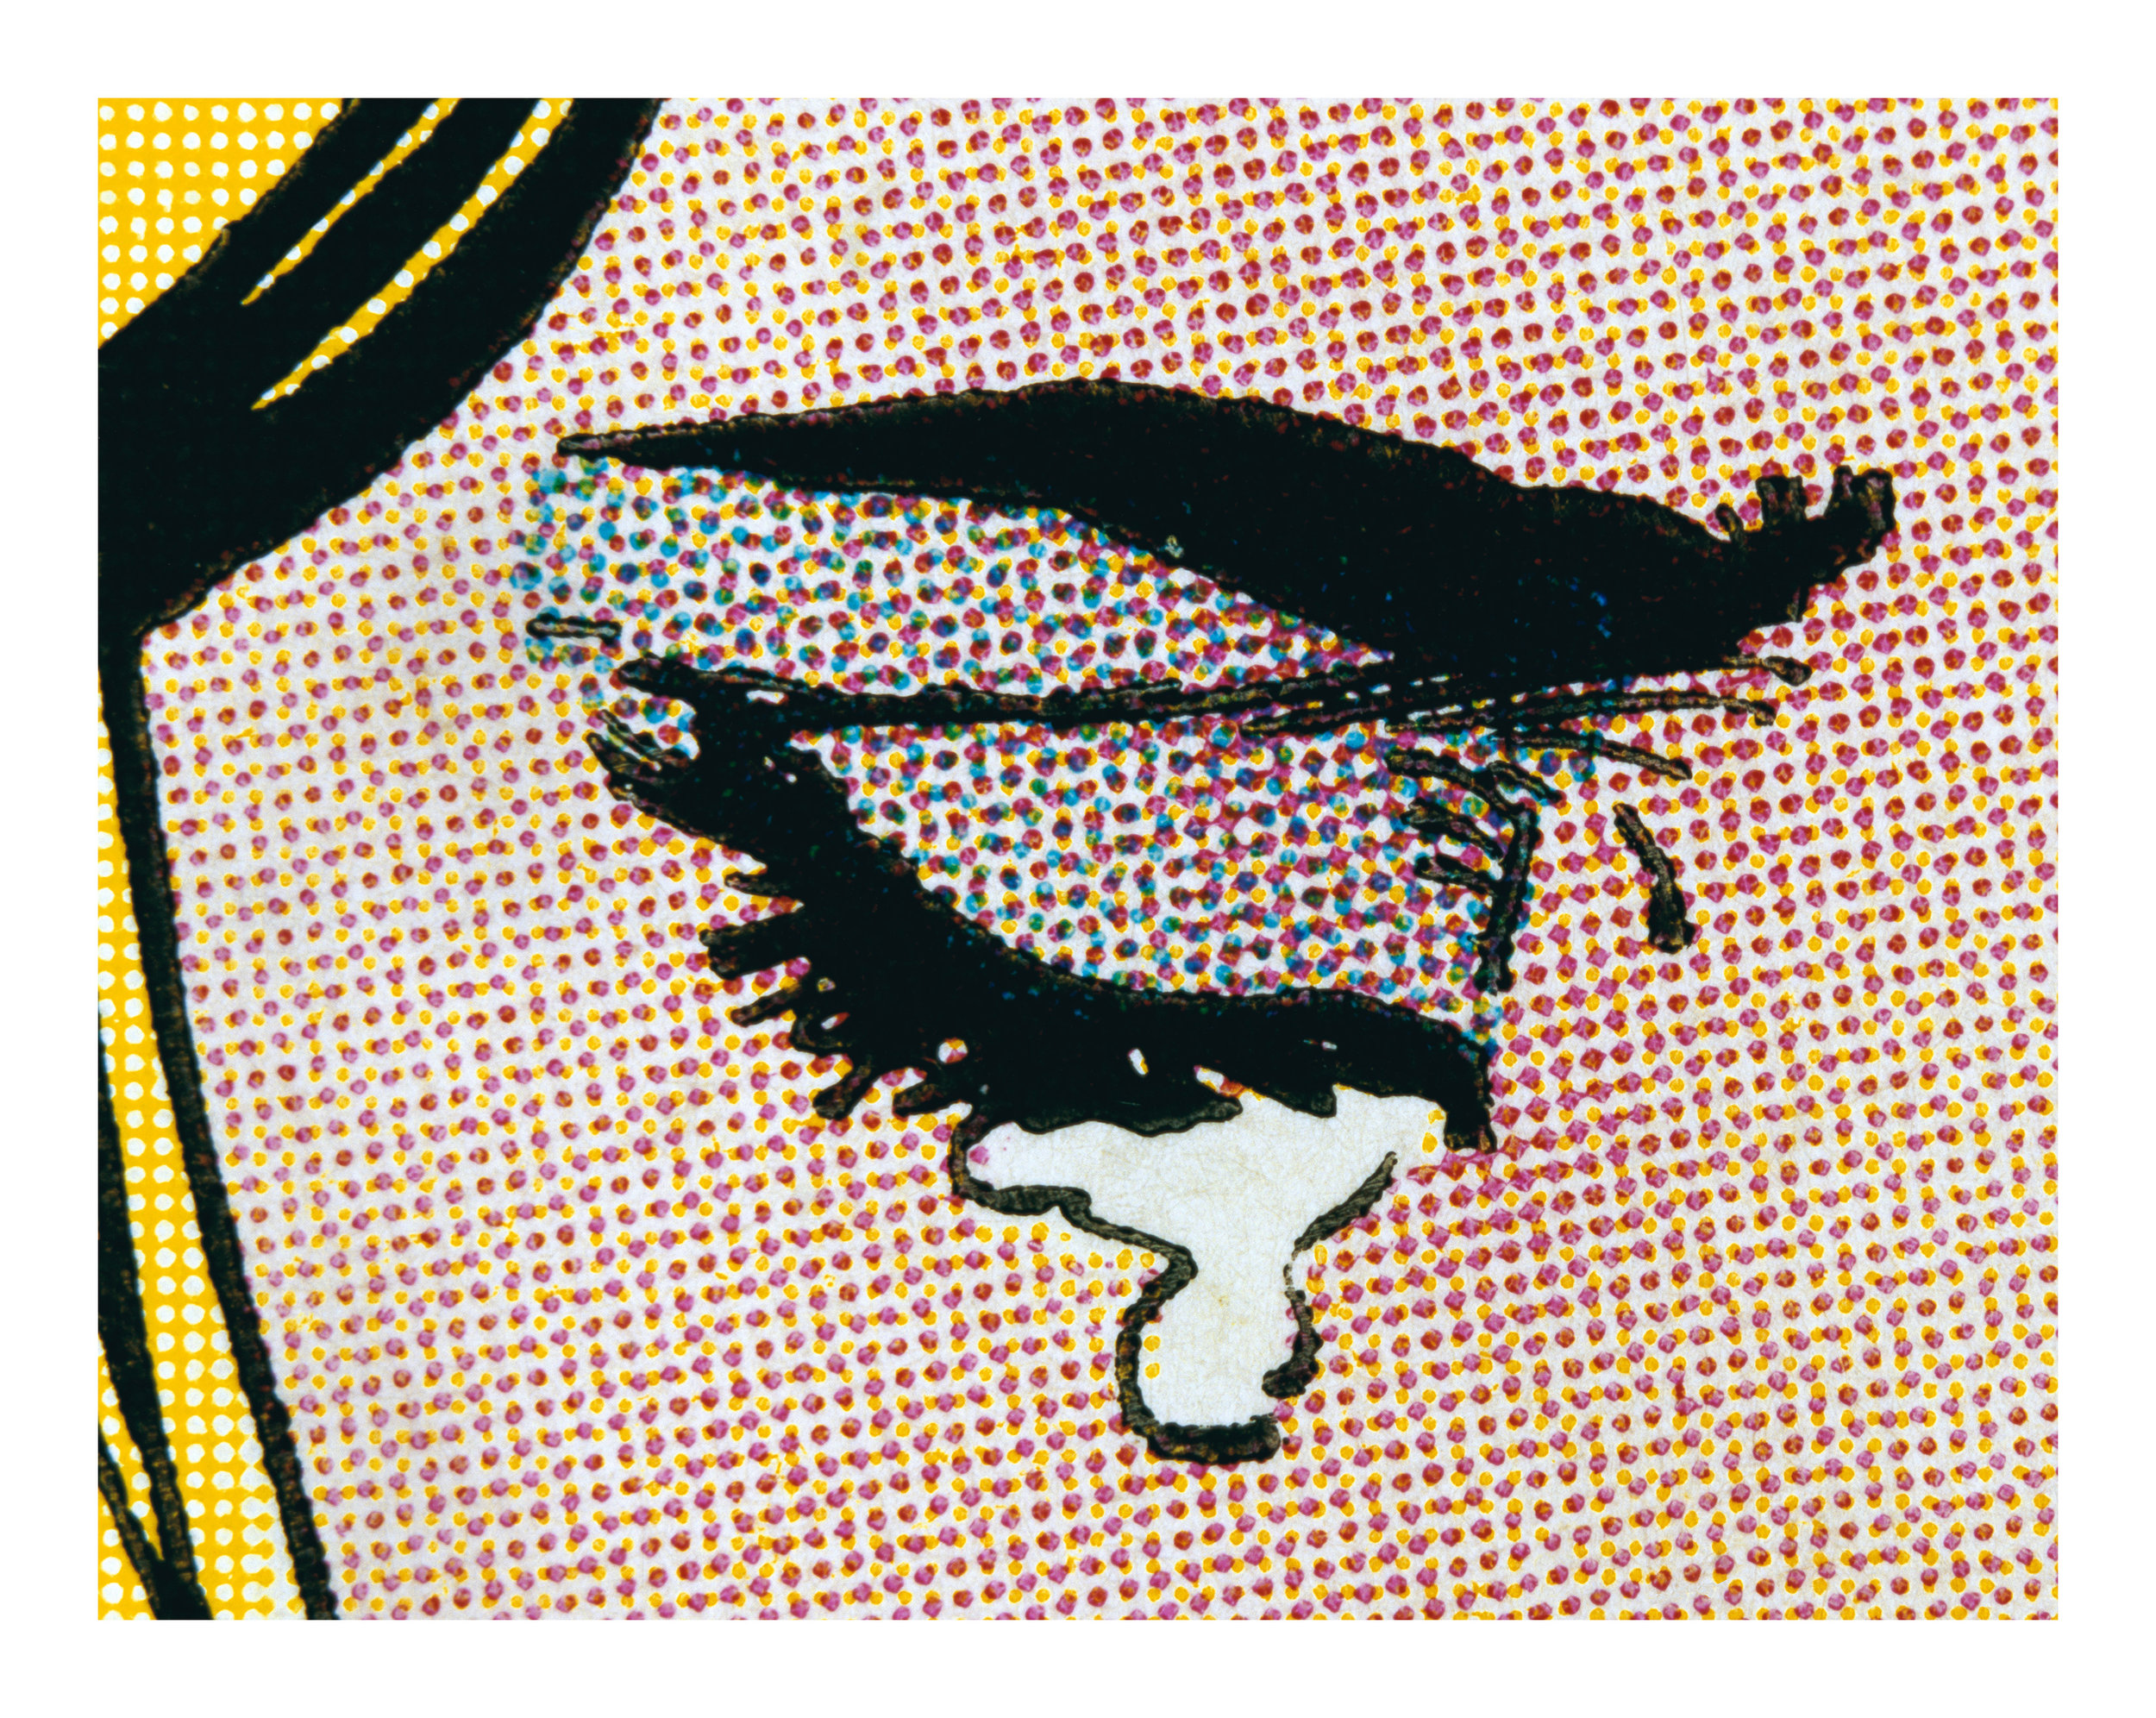 Anne Collier,  Woman Crying (Comic) #4 , 2018. Images courtesy the artist and Anton Kern Gallery, New York / © Anne Collier